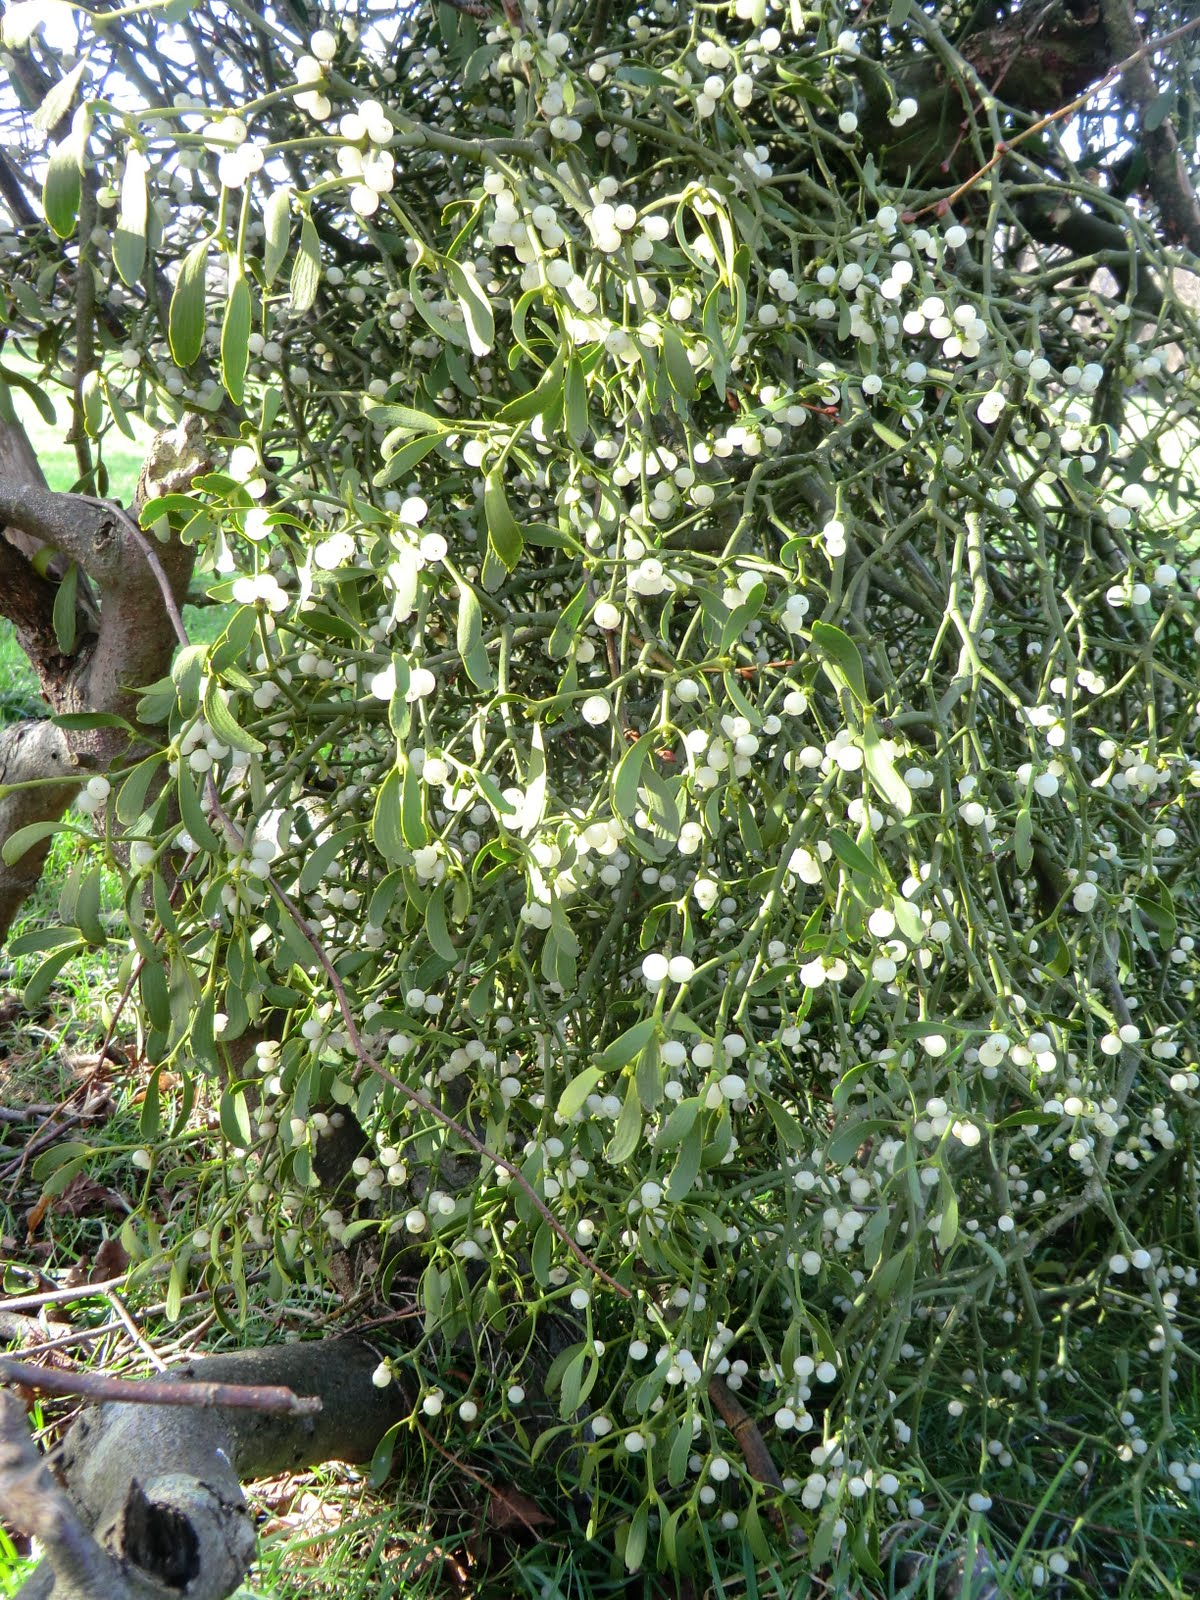 CIMG9934 Fallen branch with mistletoe, Penshurst Park